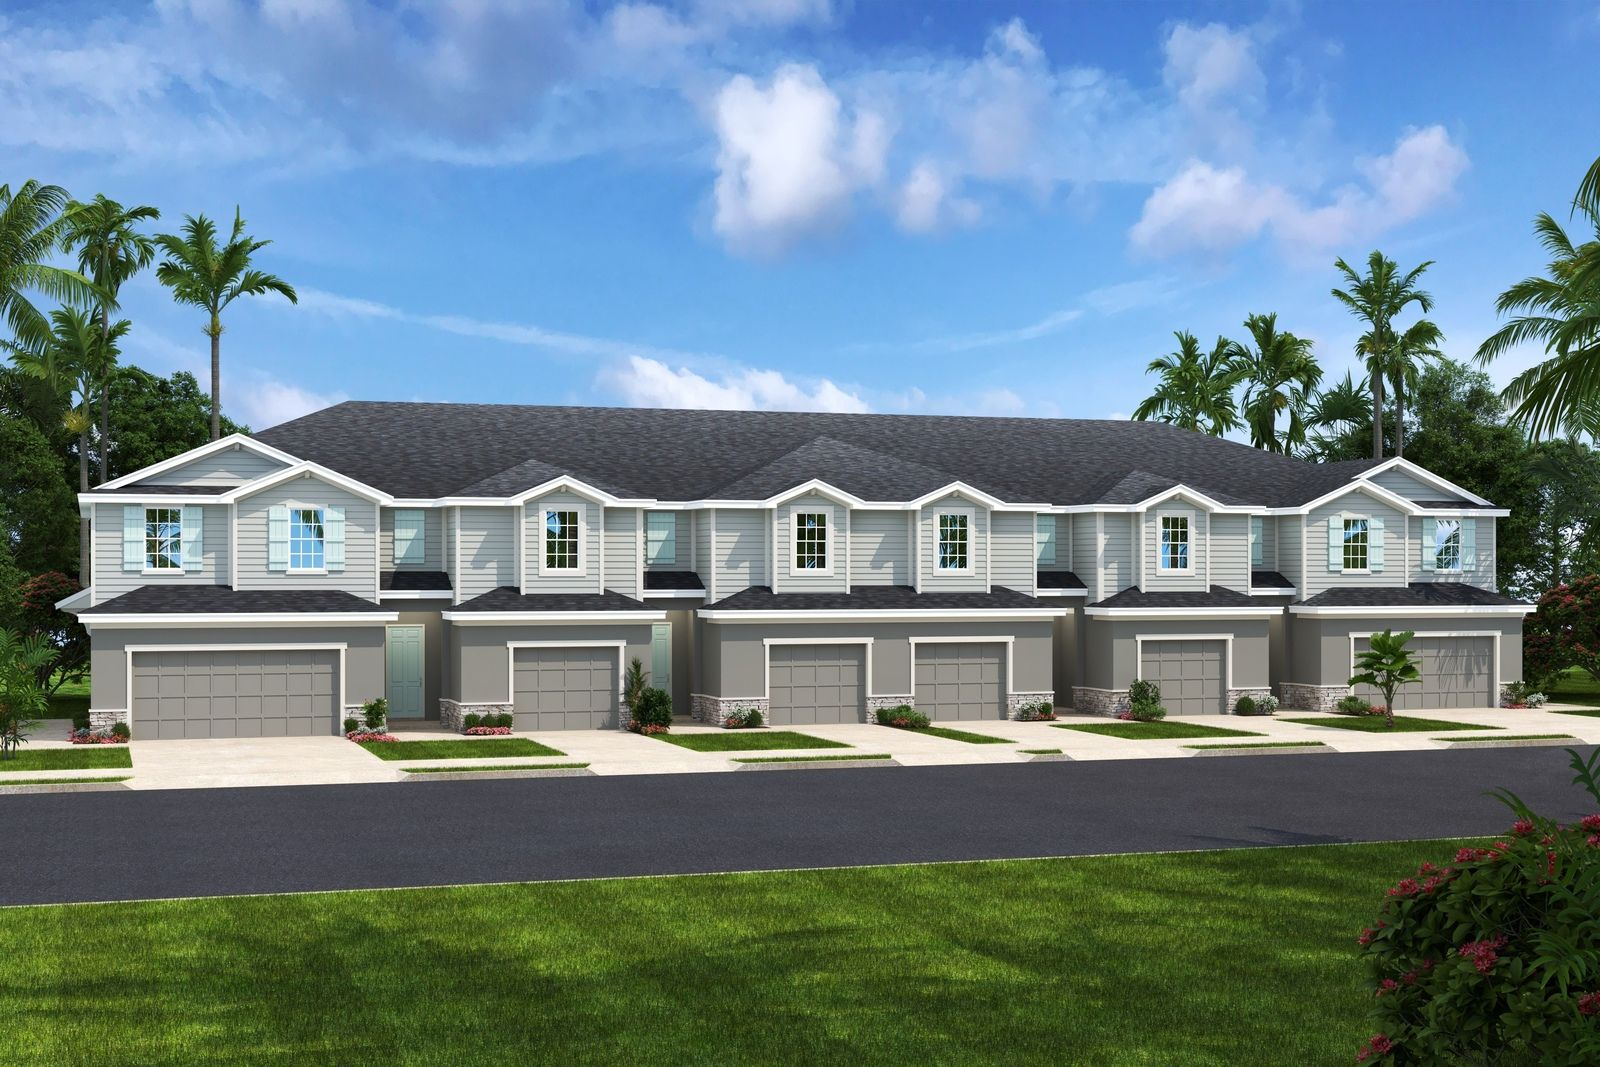 Welcome home to Holden Ridge in Minneola, FL!:Welcome hometo Minneola's ONLY new gated Townhome community with low-maintenance living in a stunning, natural setting near turnpike & top schools. From Upper $200s.